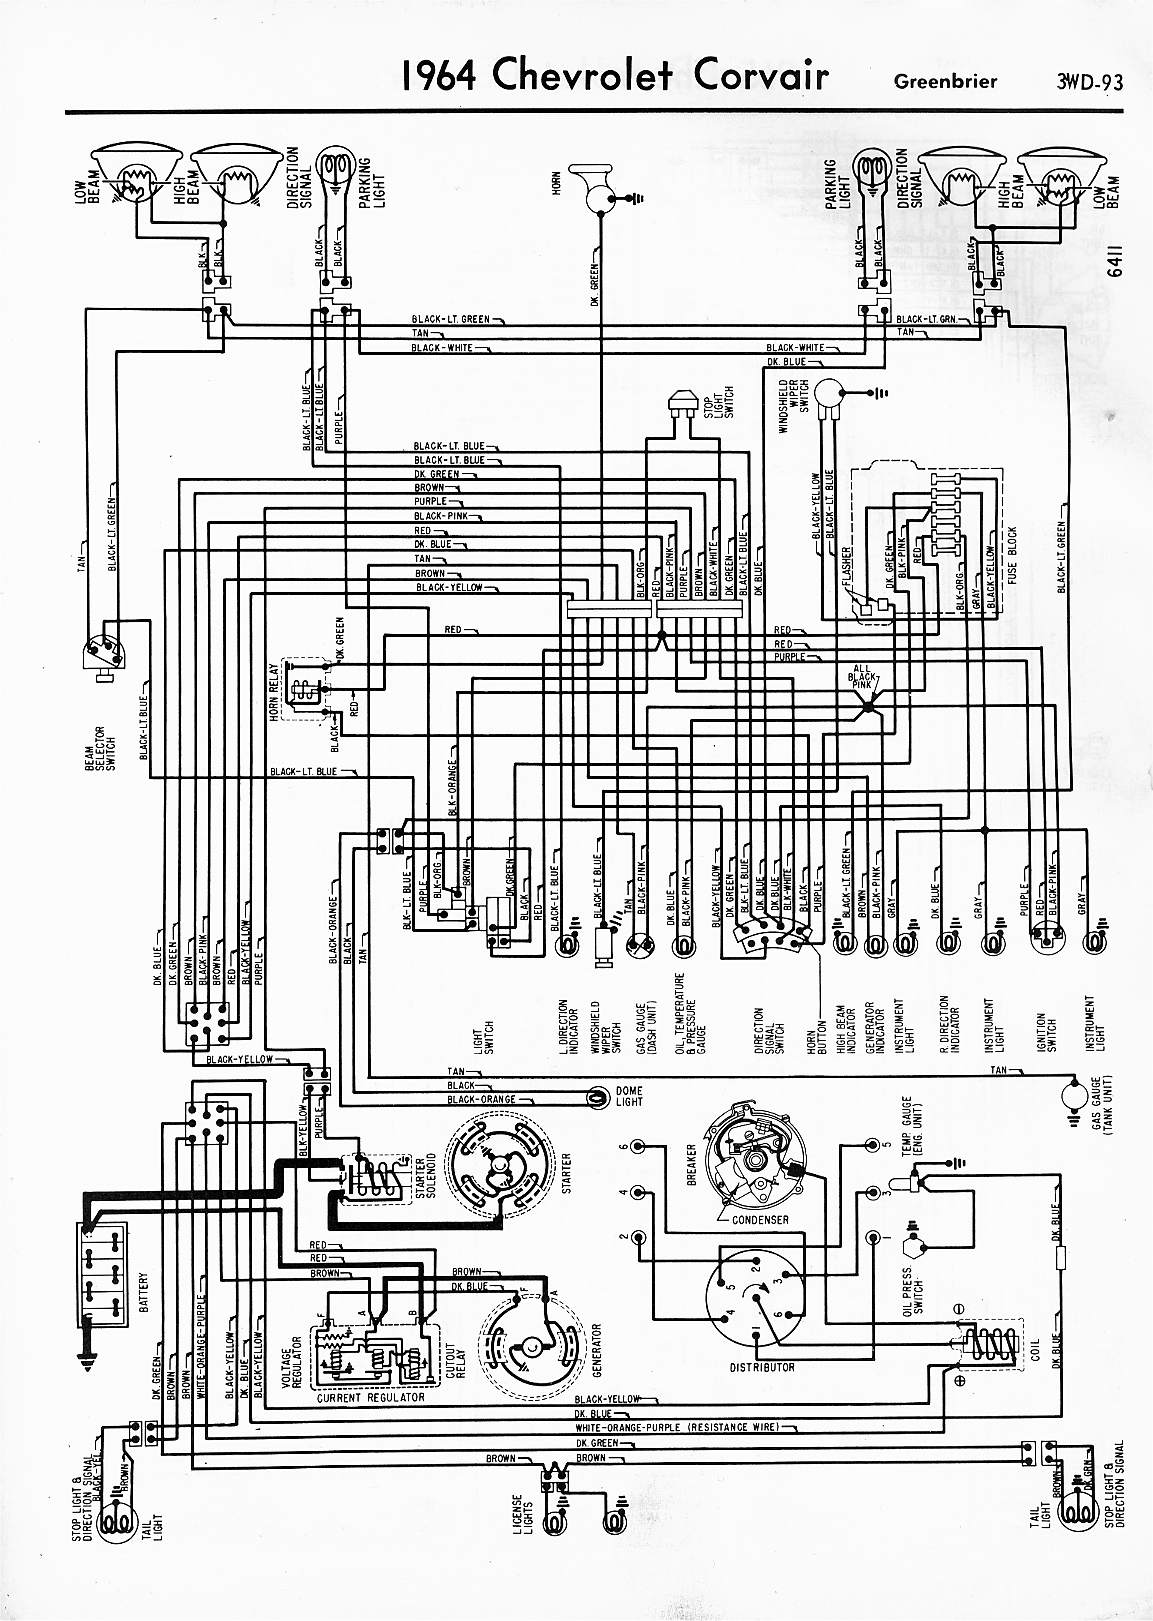 Chevy Wiring Diagram also Fedbc E Da E B D De C Cb furthermore Maxresdefault likewise Chevelle Wiring Diagrams Of Chevelle Wiring Diagram together with Maxresdefault. on wiring diagram 65 chevy c10